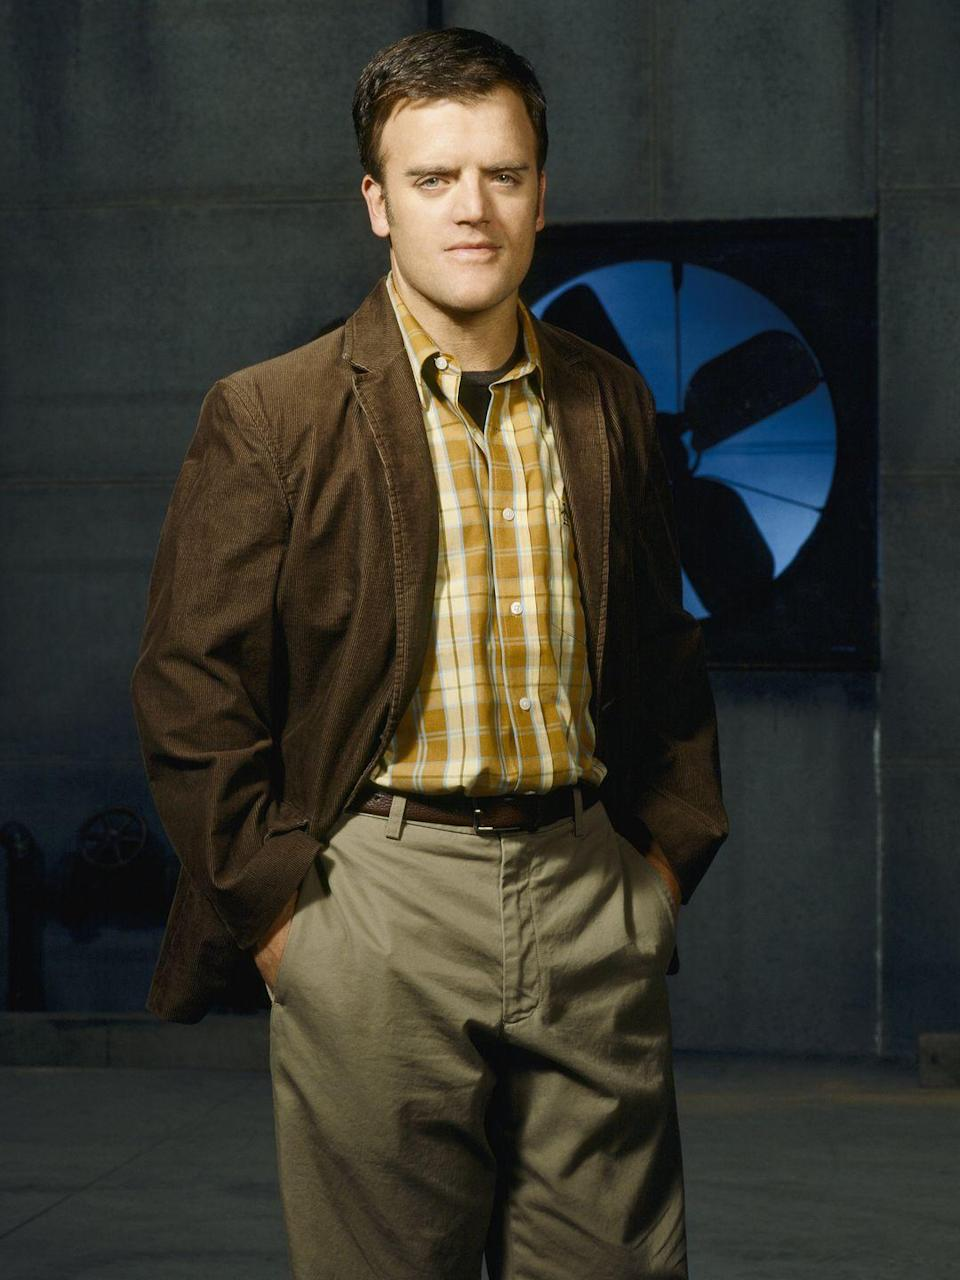 <p>Like Garner, Weisman also appeared on J.J. Abrams's earlier series <em>Felicity</em> before joining <em>Alias</em> as the lovable nerd Marshall Flinkman. He was the Q to Bristow's Bond, creating a host of awesome cool gadgets and spy gear for missions. You'll also spot him on some other cult faves, he played Dreg (one of Glory's minions) on <em>Buffy the Vampire Slayer</em> and he found a genie and turned invisible on a memorable episode of <em>The X-Files</em>.</p>